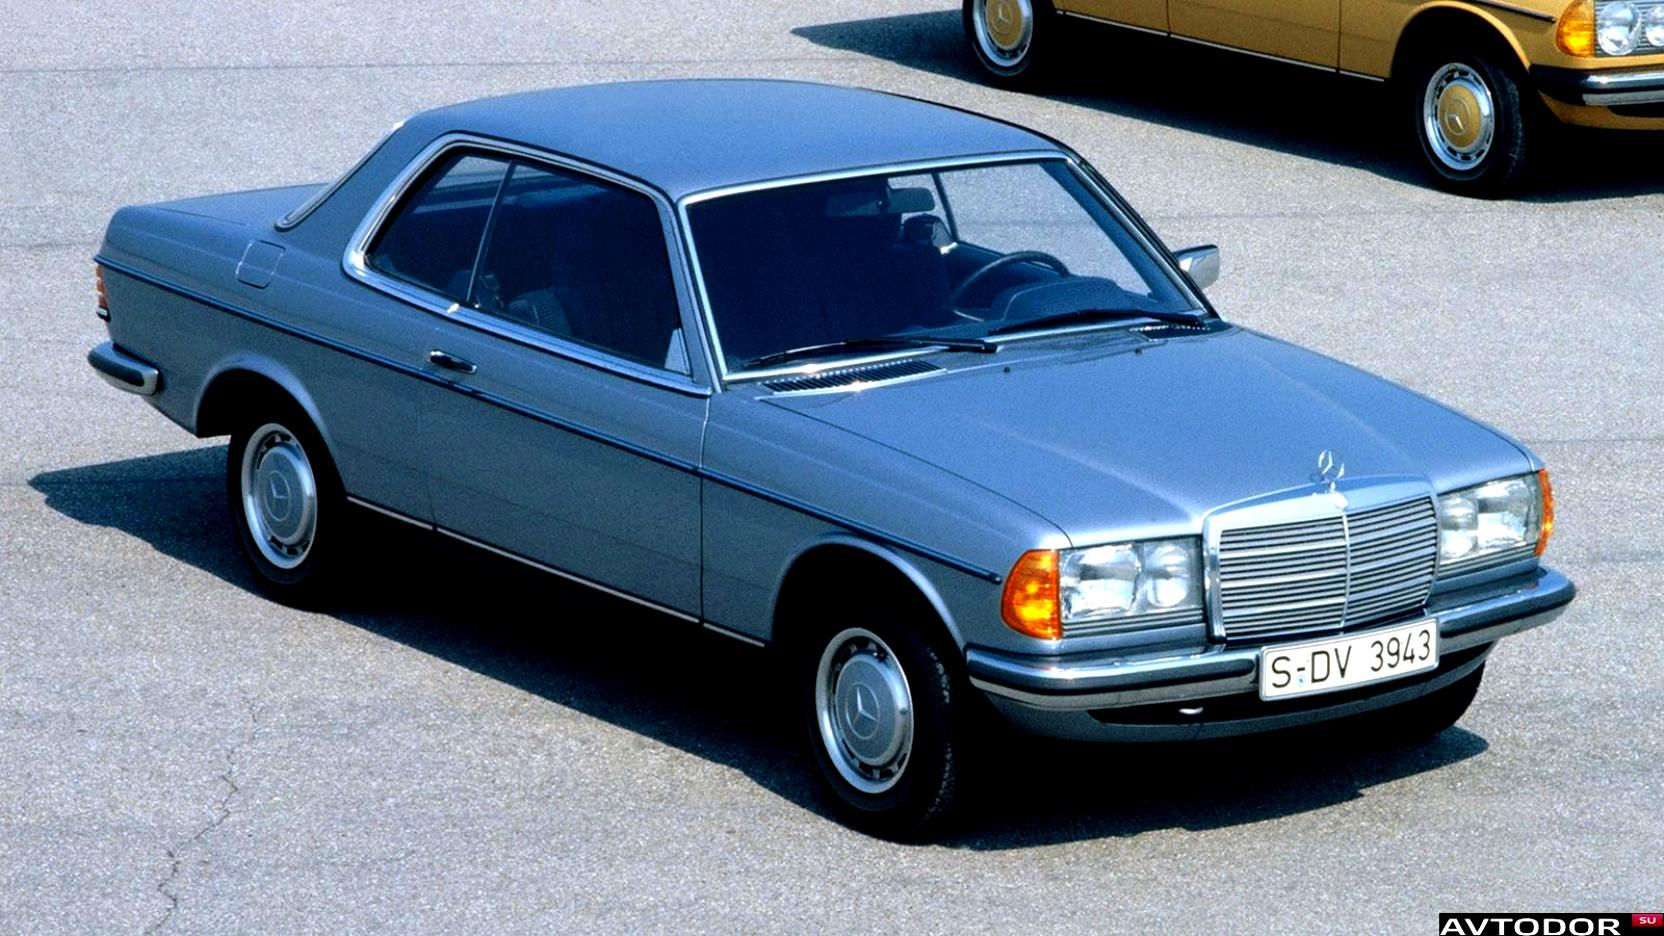 Mercedes Benz Coupe C123 1977 On 230ce Fuel Filter